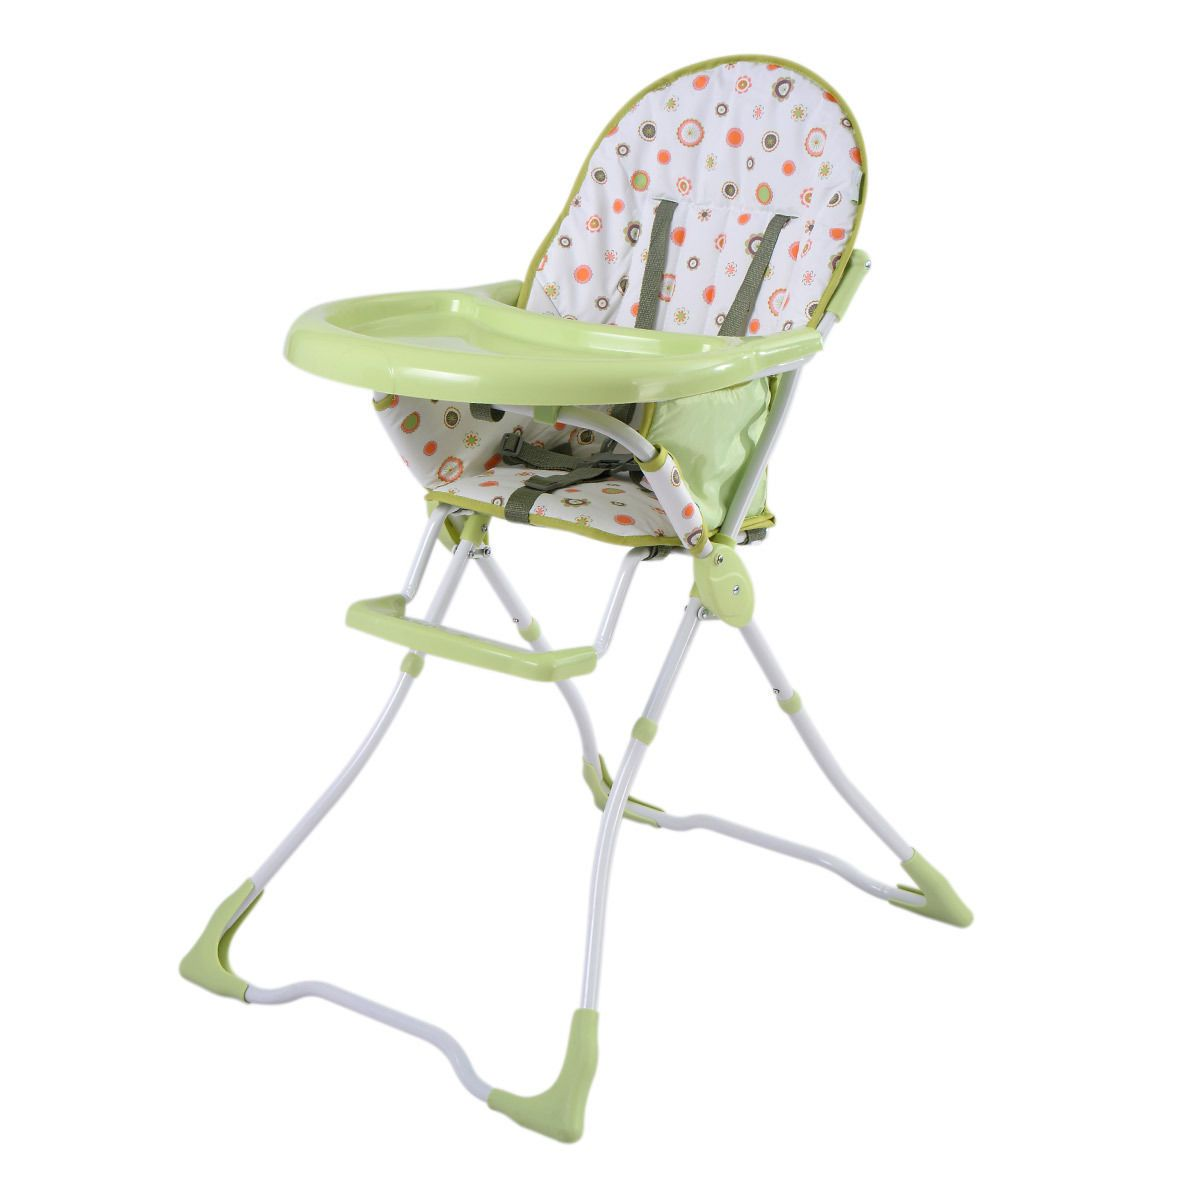 Green Baby High Chair Infant Toddler Feeding Booster Seat Portable Food Table Baby High Chair Toddler High Chair Feeding Toddlers